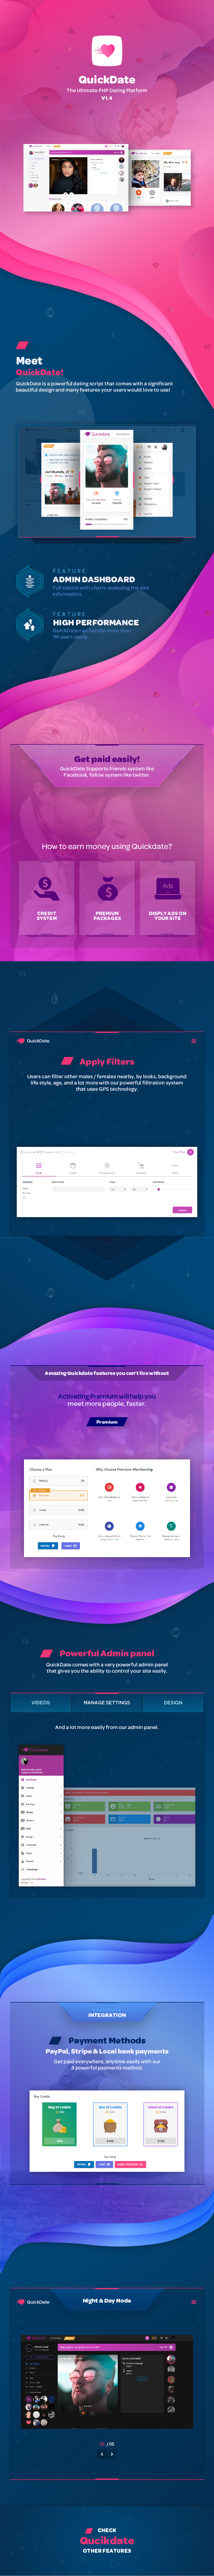 QuickDate - The Ultimate PHP Dating Platform - 1